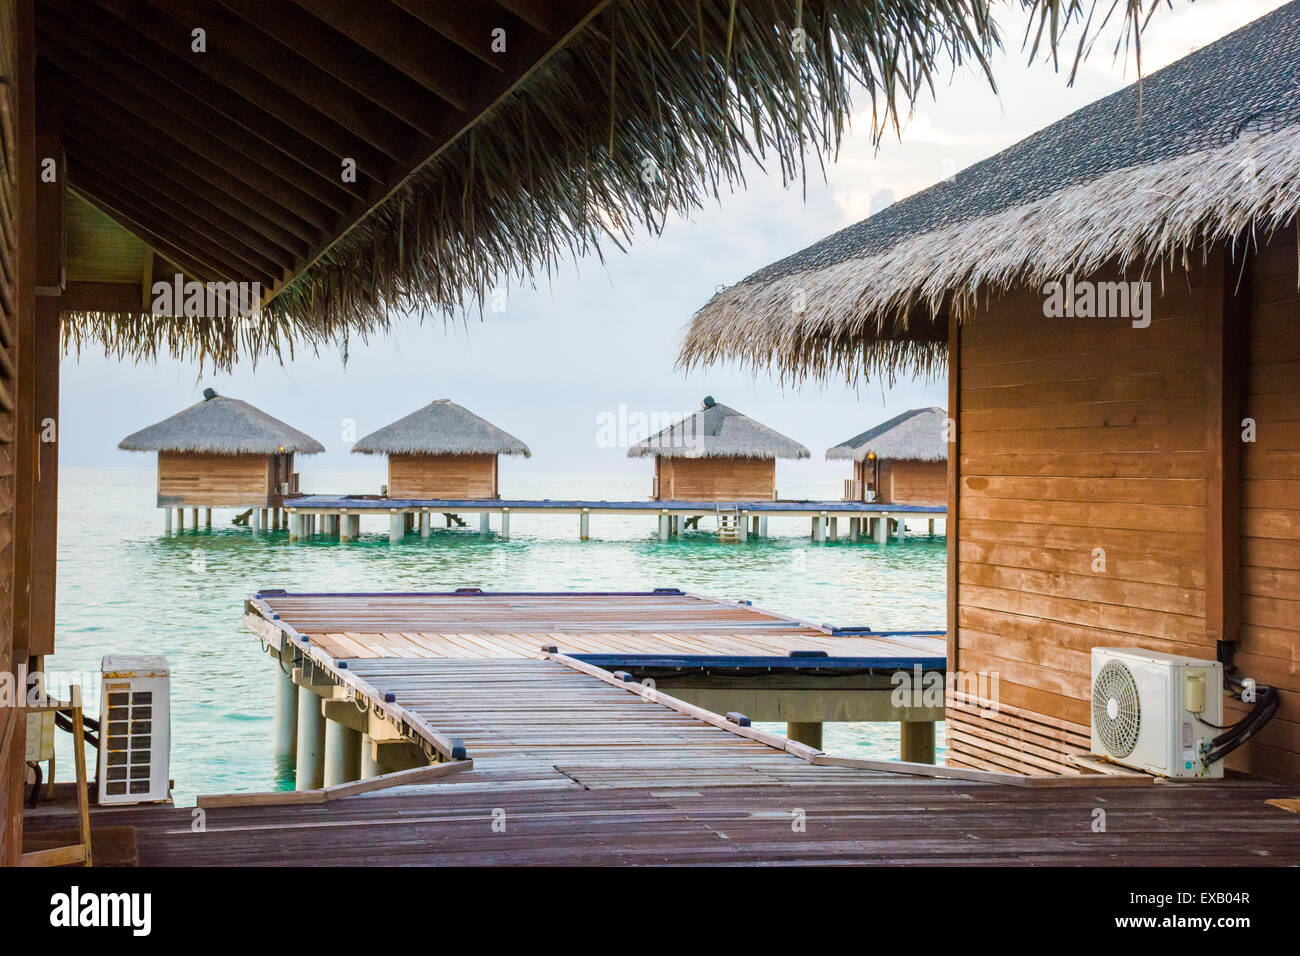 Water huts of an island resort in a shallow lagoon in Maldives - Stock Image